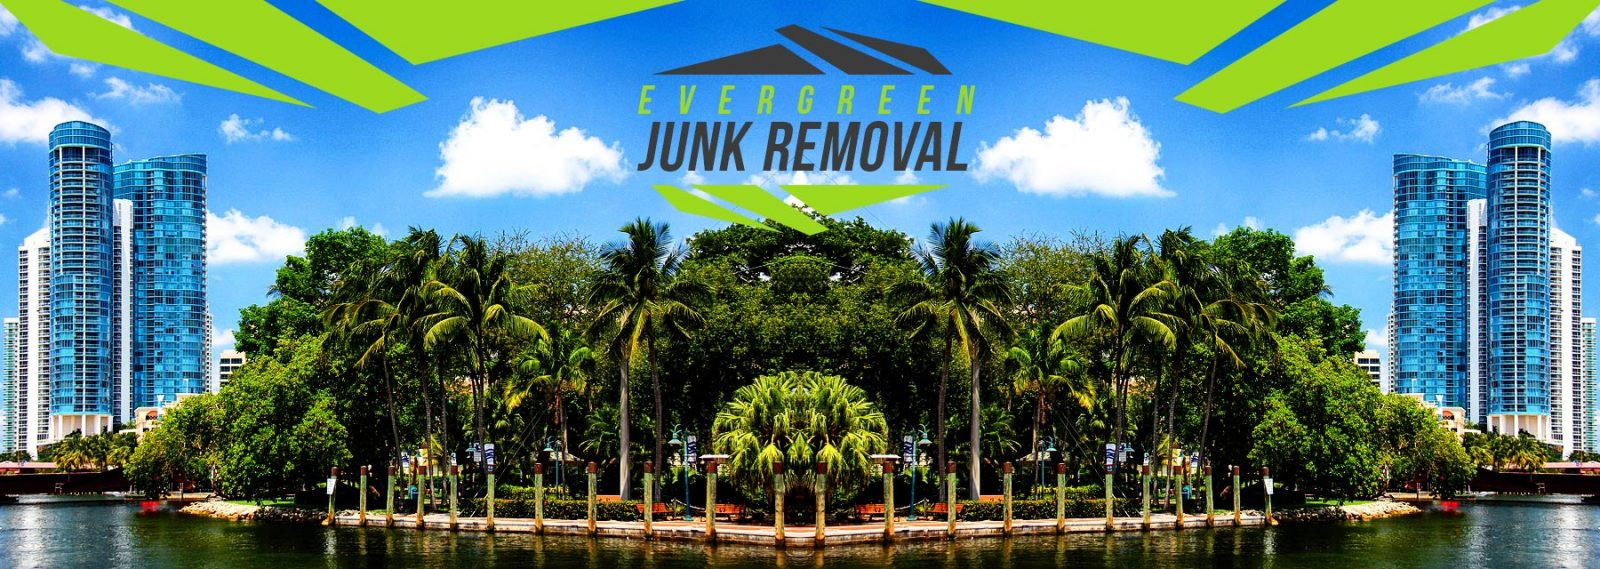 Pembroke Pines Hot Tub Removal Company